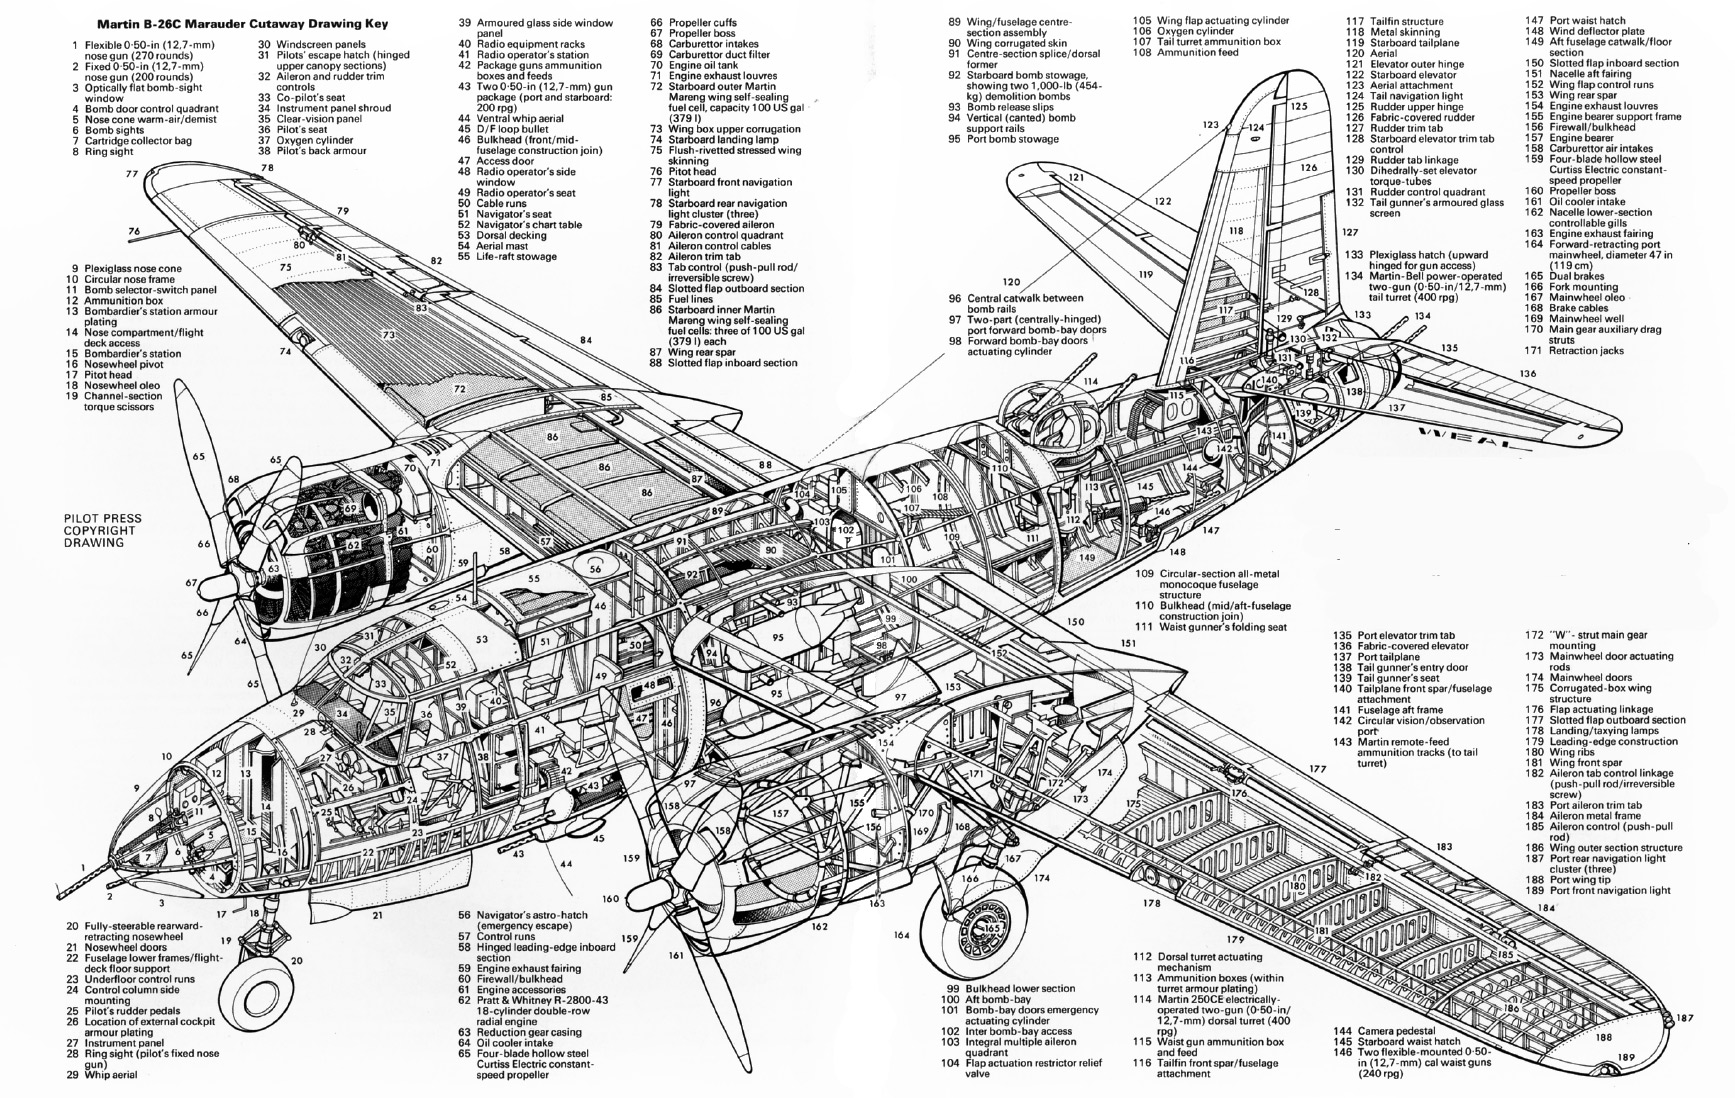 blackhawk helicopter interior with Cutaway Martin B 26c Marauder on Ste unk Battle Ready Airship besides Boeing E2 80 93Sikorsky RAH 66  anche as well Product together with Mi 24 Pics additionally Navy Copter Crash Lands Pair Hurt.